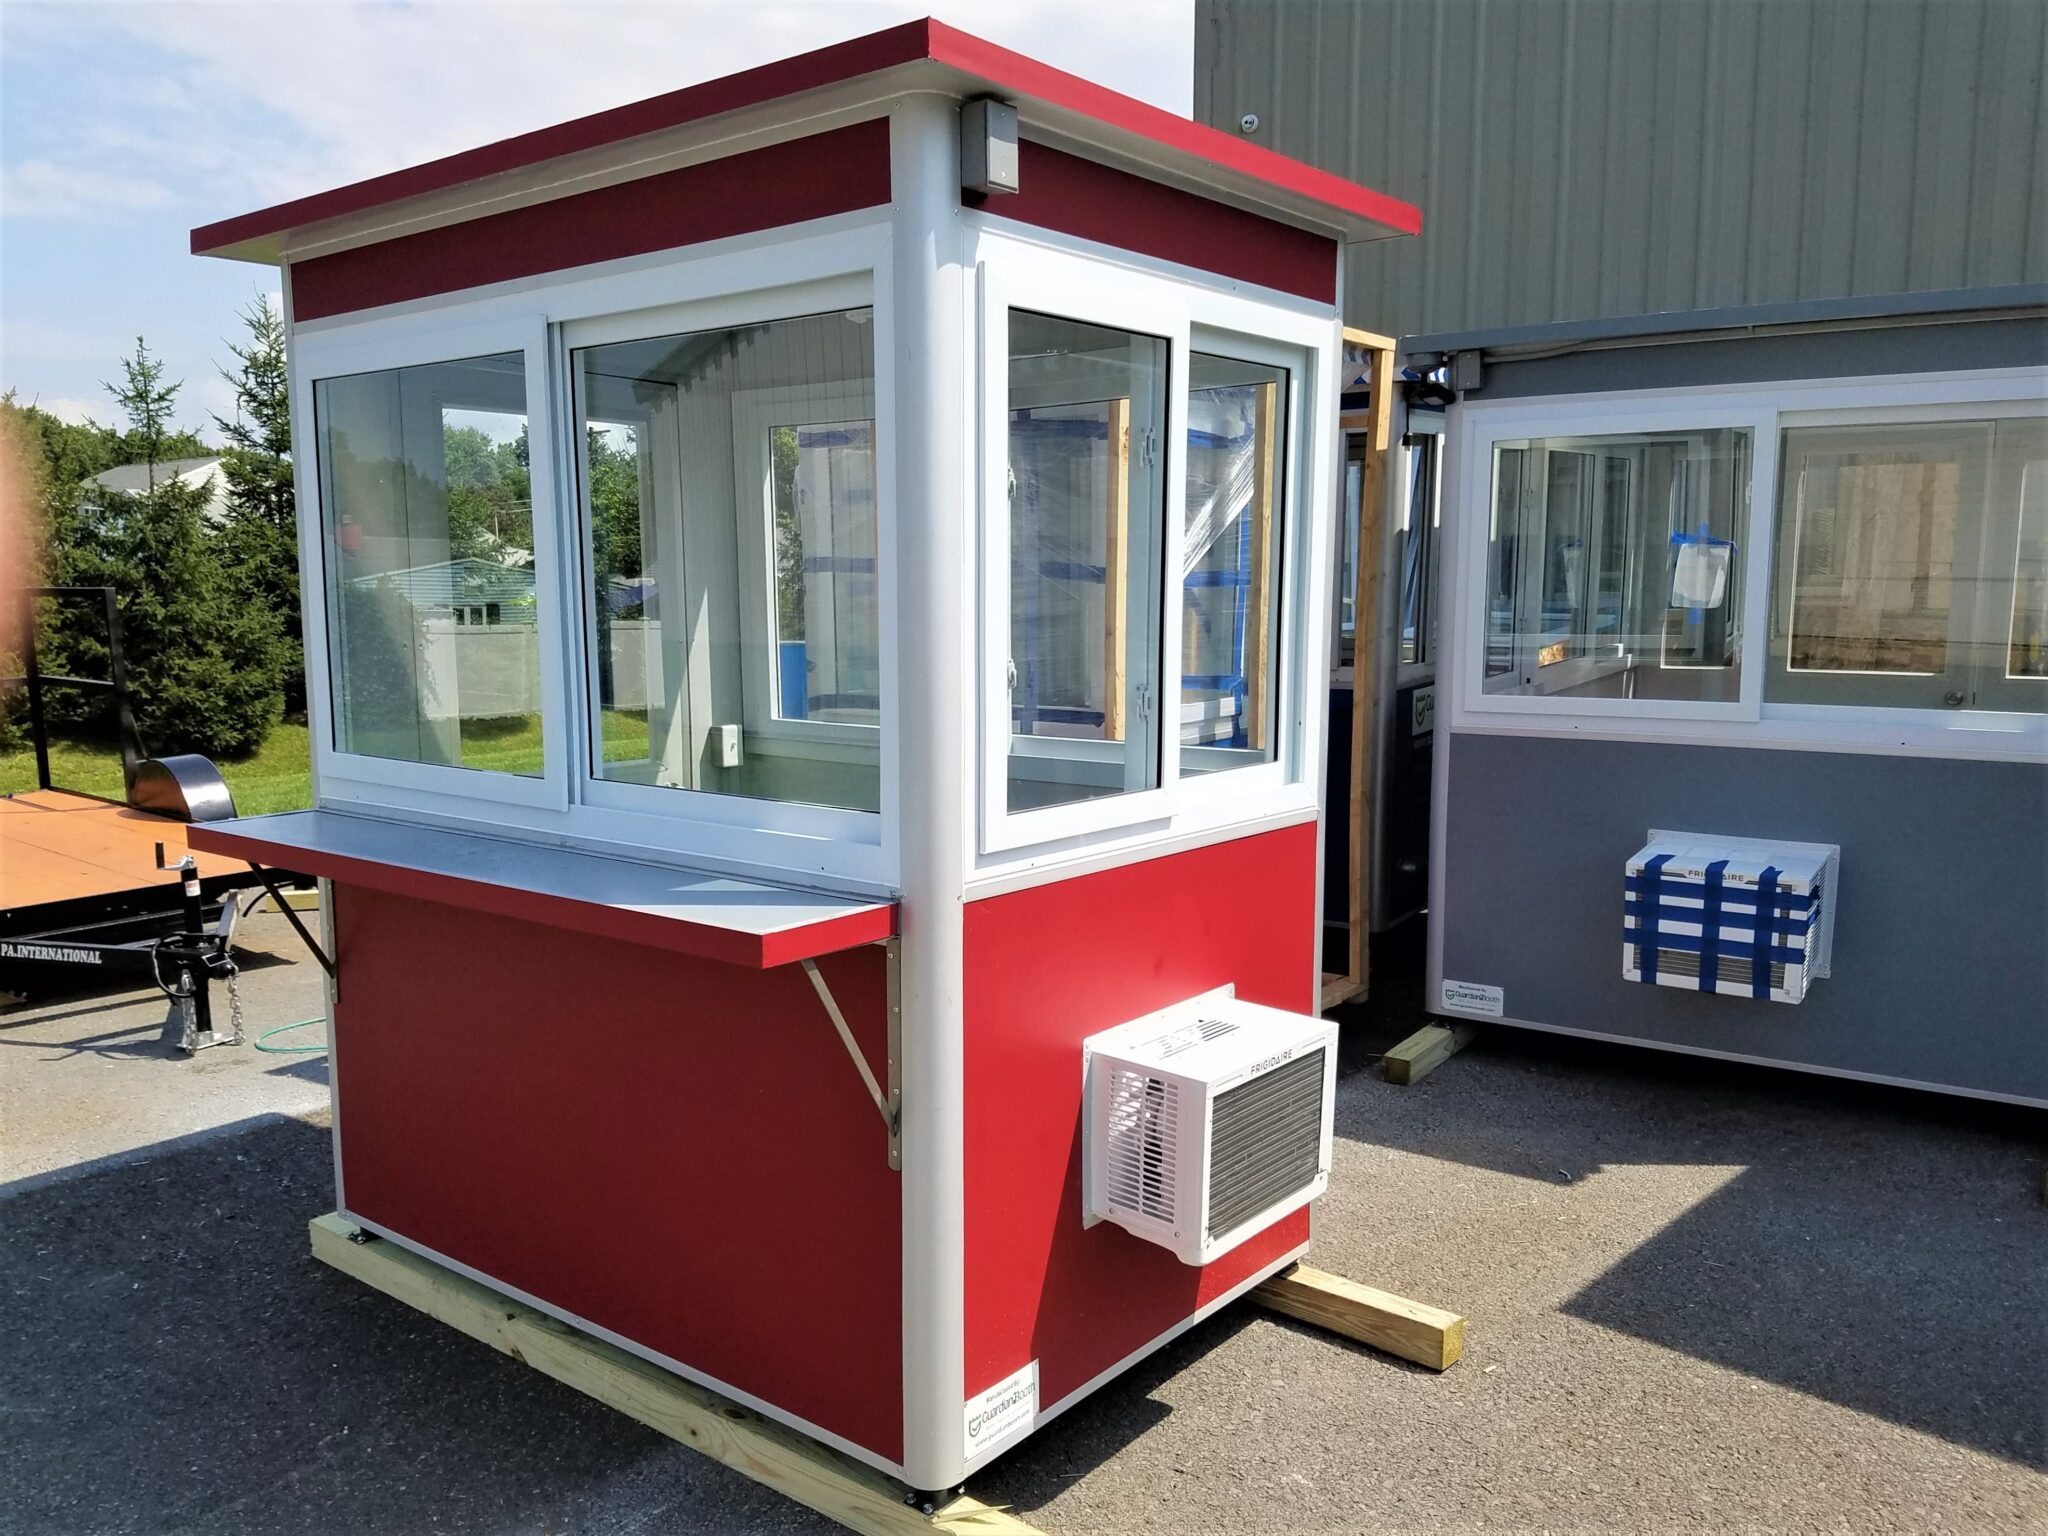 4x6 Booth with Add-on Features Custom Exterior Color, Exterior Counter